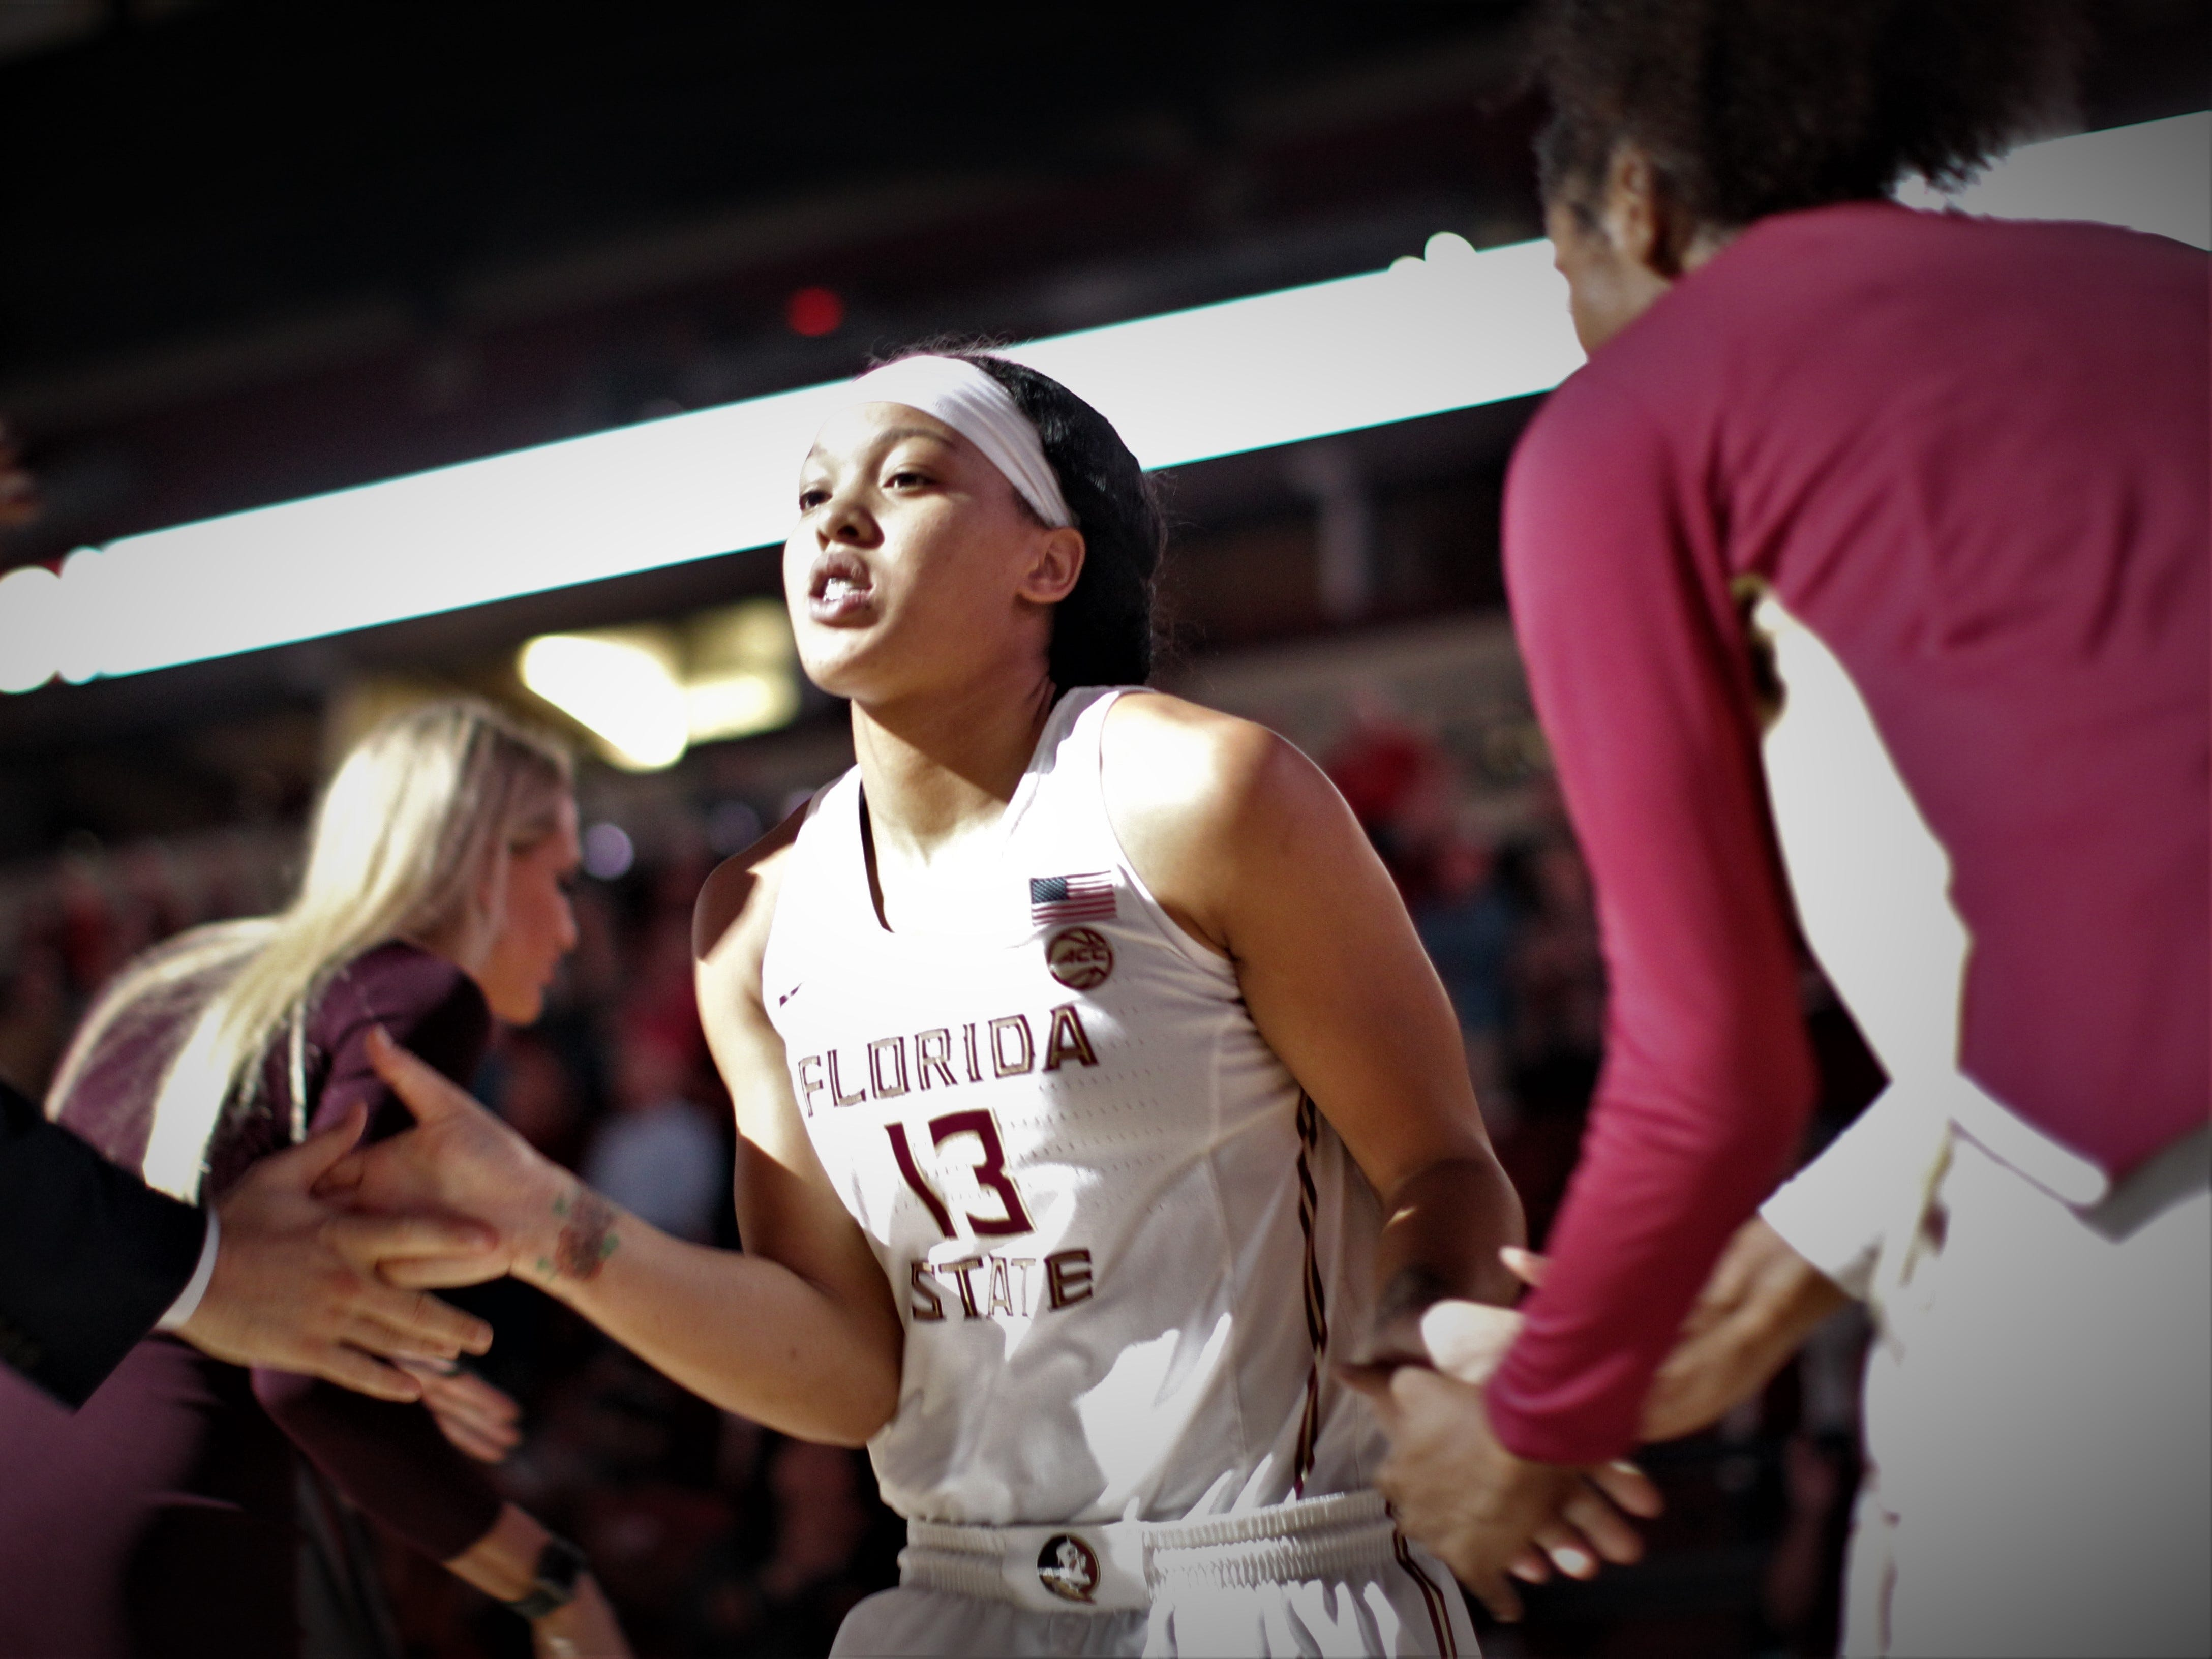 Florida State junior Nausia Woolfolk is introduced as a starter before the Seminoles' game against Florida at the Tucker Civic Center on Nov. 11, 2018.